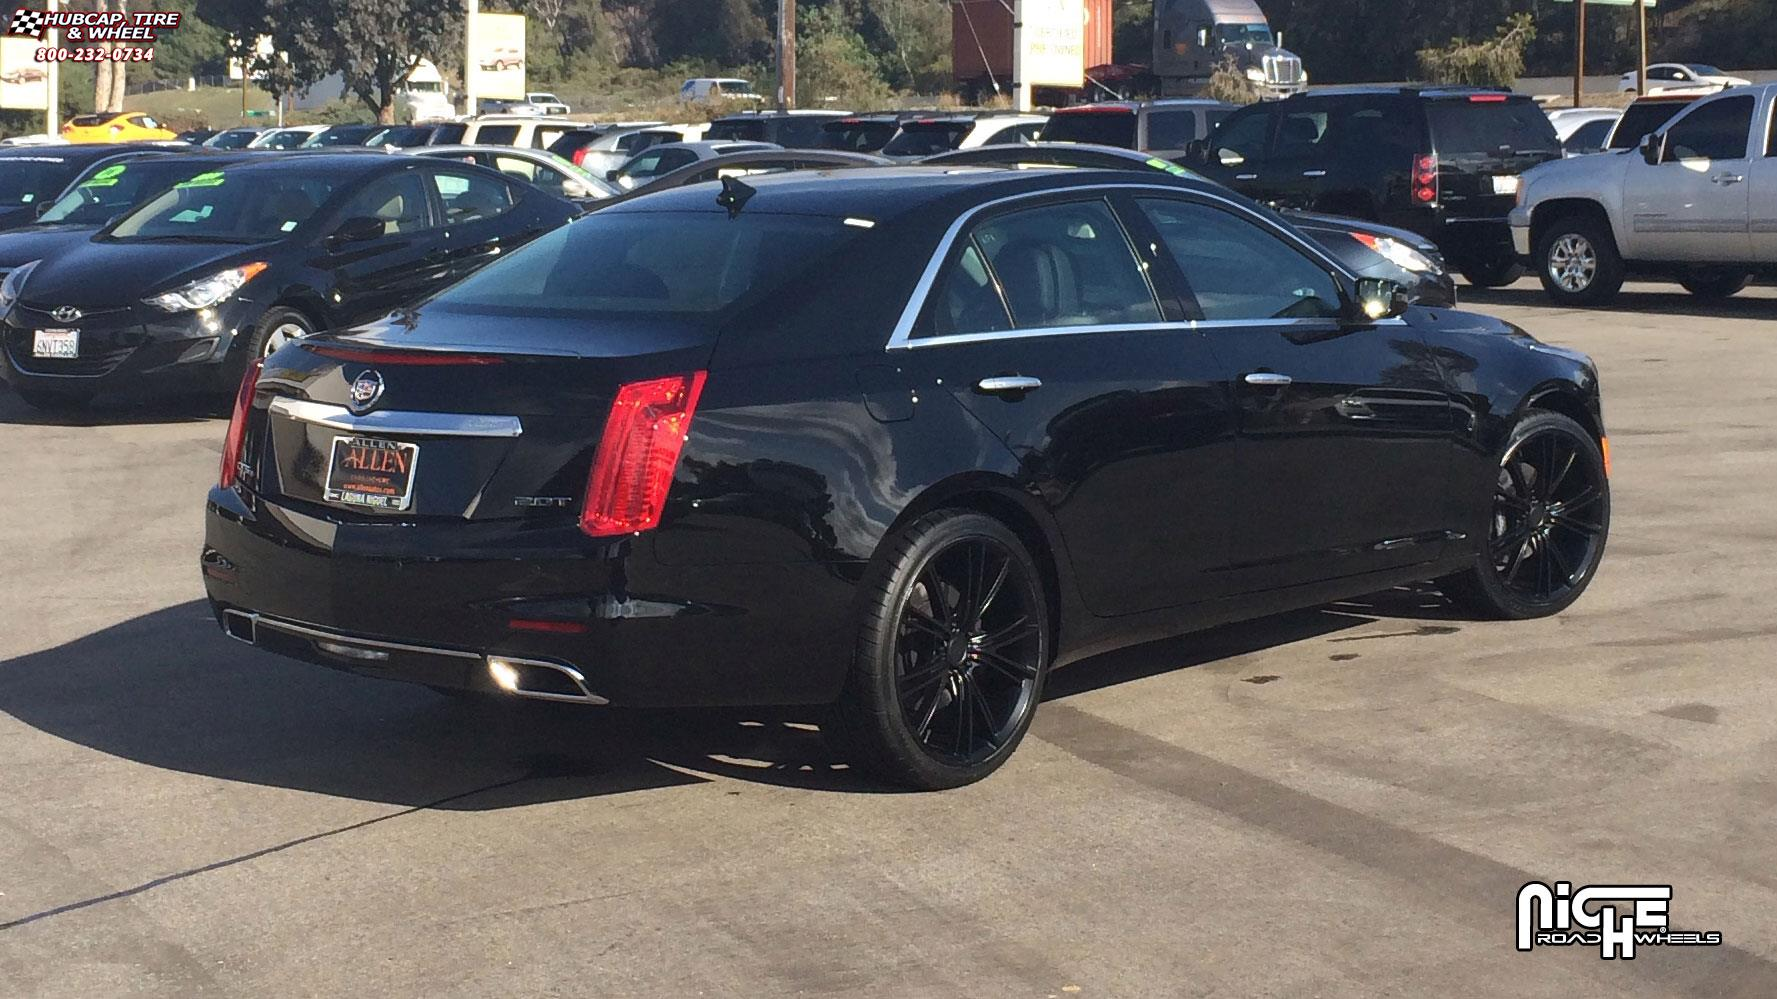 Cadillac cts 4 niche ritz m144 20x9 satin black wheels and rims